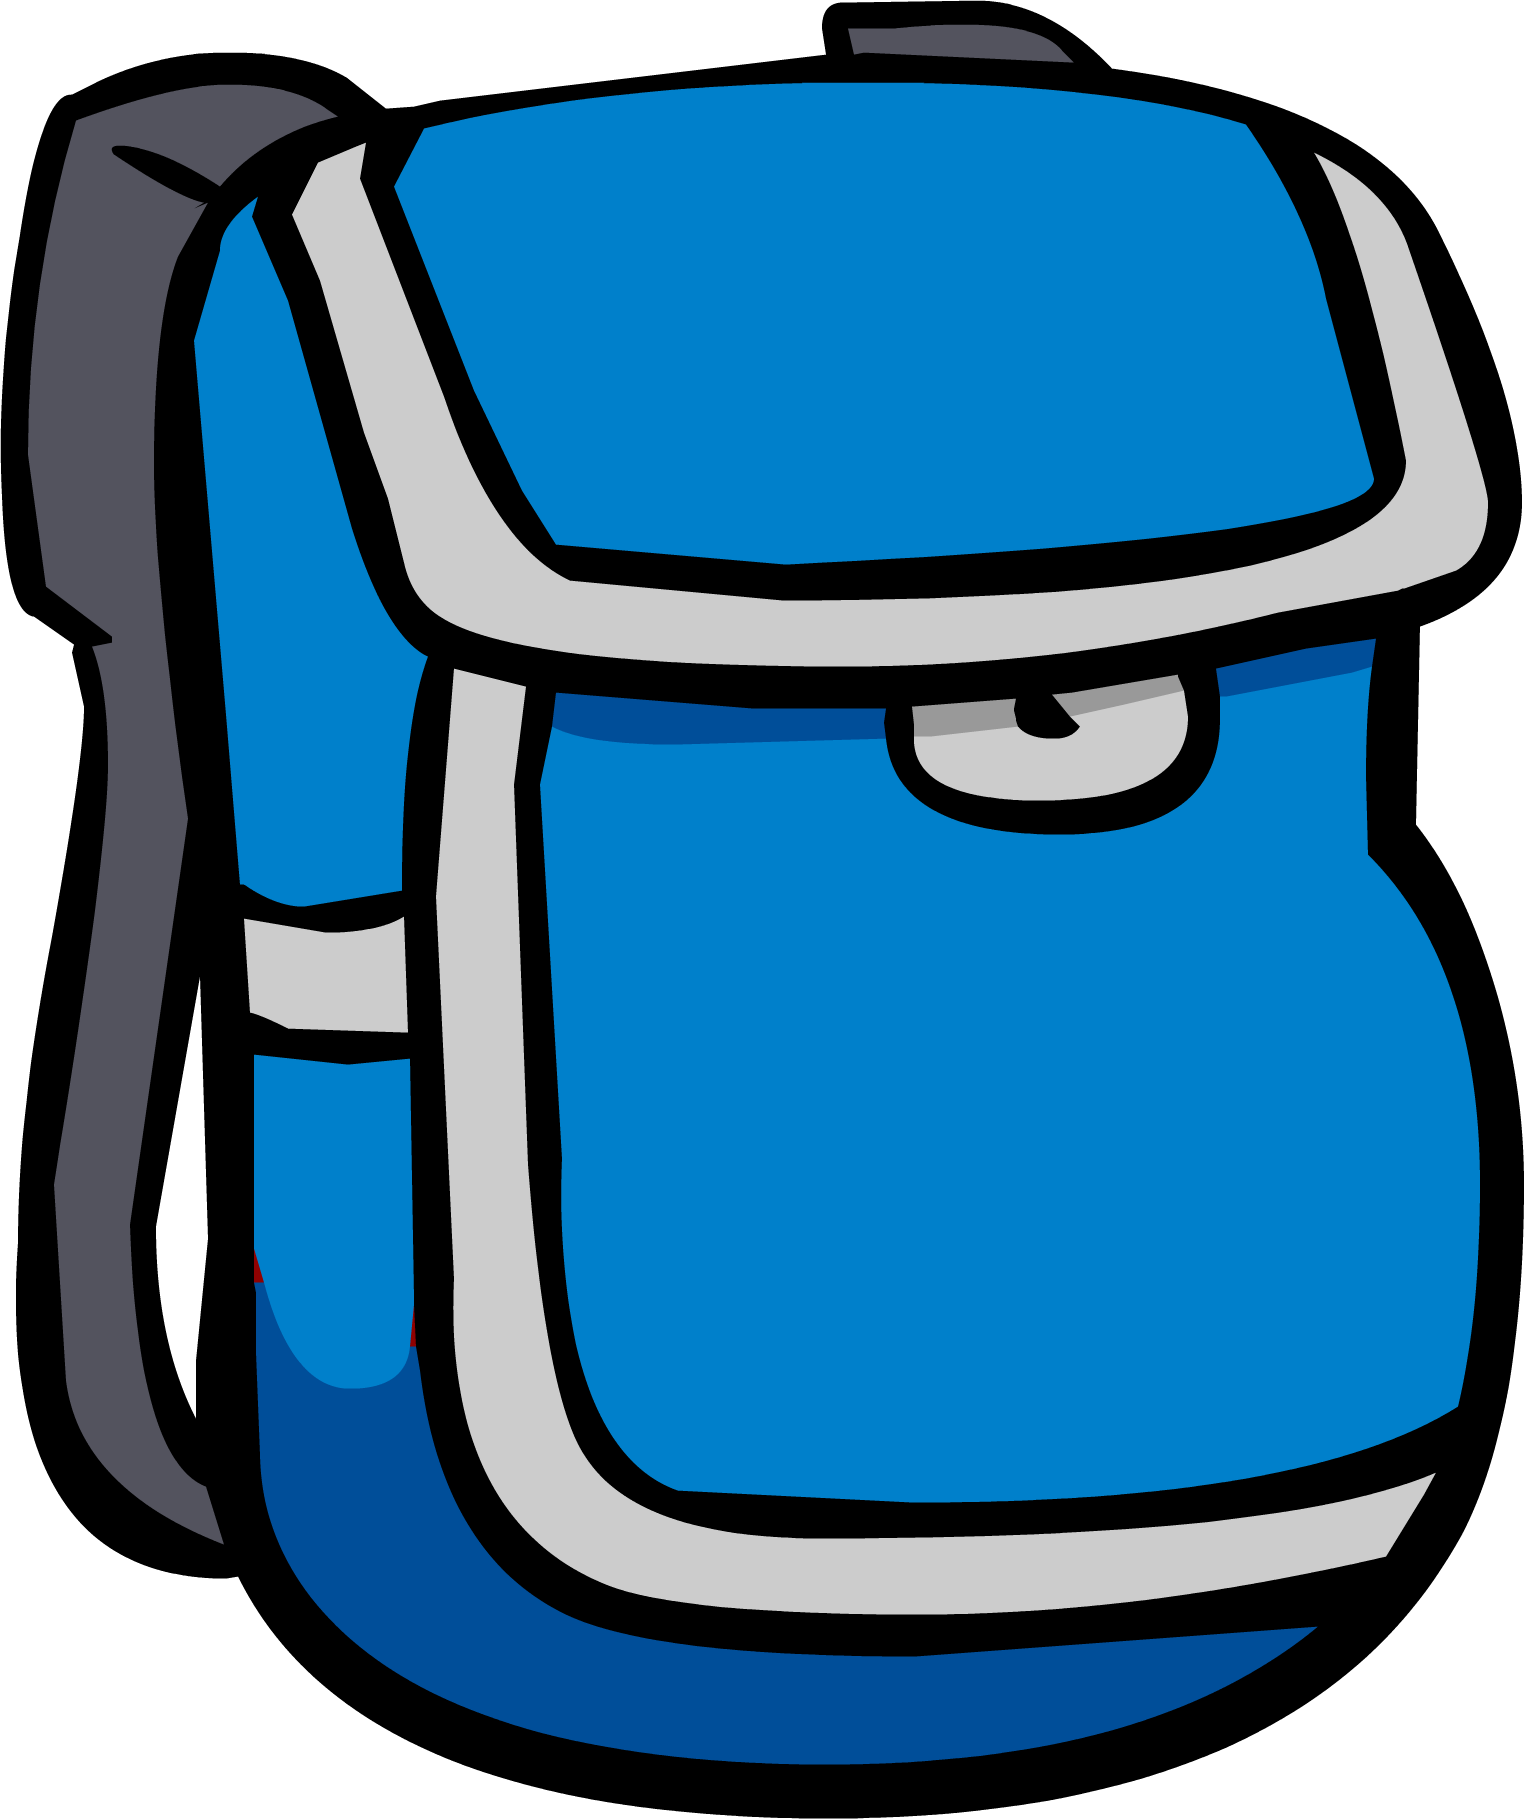 File Axis powers 0 moreover File Blue Backpack icon 312 in addition File Timeline  Earth 227 as well File Warframe new logo look vector by tasquick D87fzxg furthermore File Twitch Tv Logo. on file tv icon 2